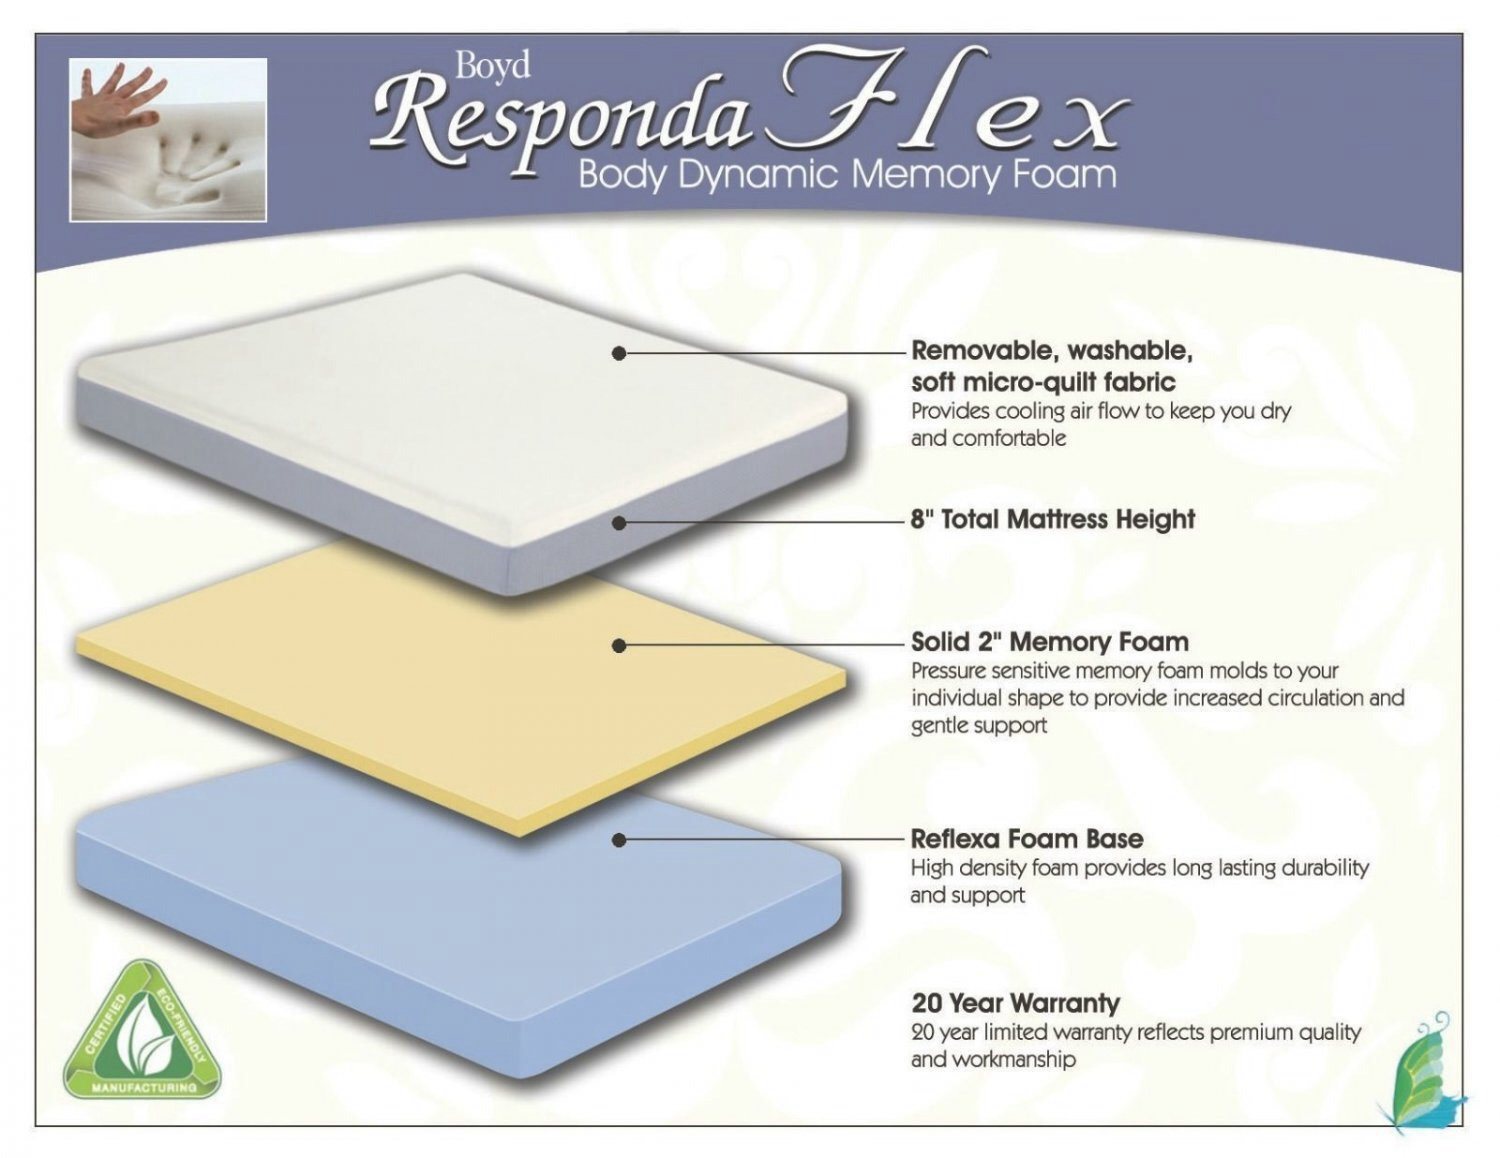 NEW Full 8'' Medium Firm Memory Foam Mattress! Responda Flex 5082